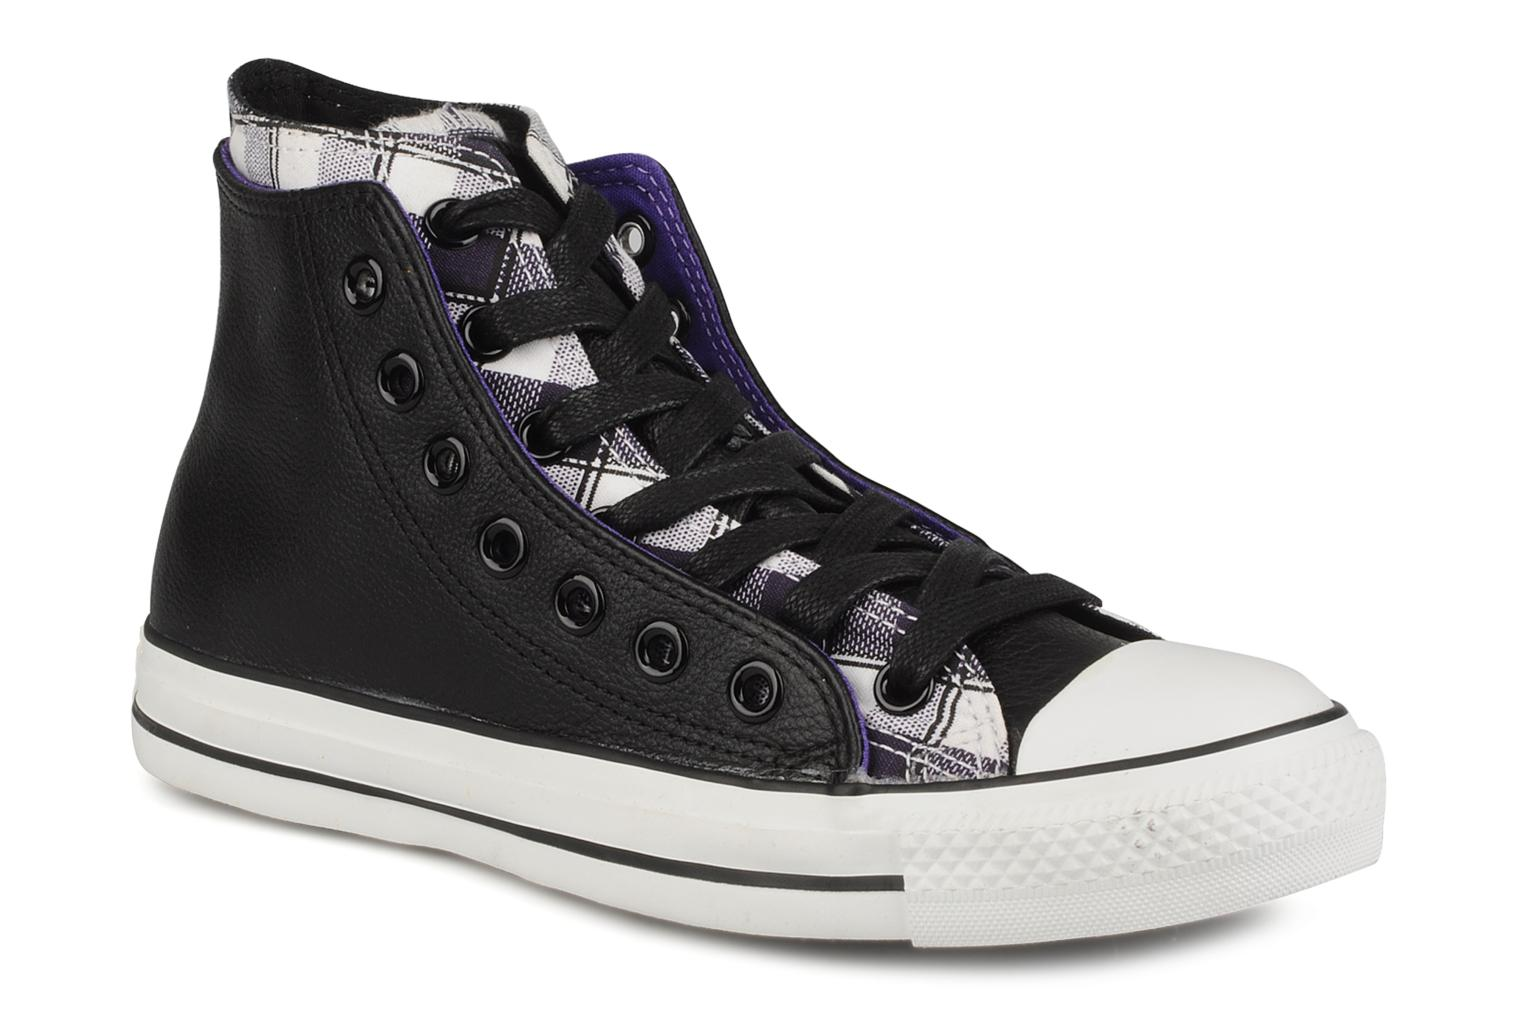 69b1601b7cc2 uk converse double ec671 c449b